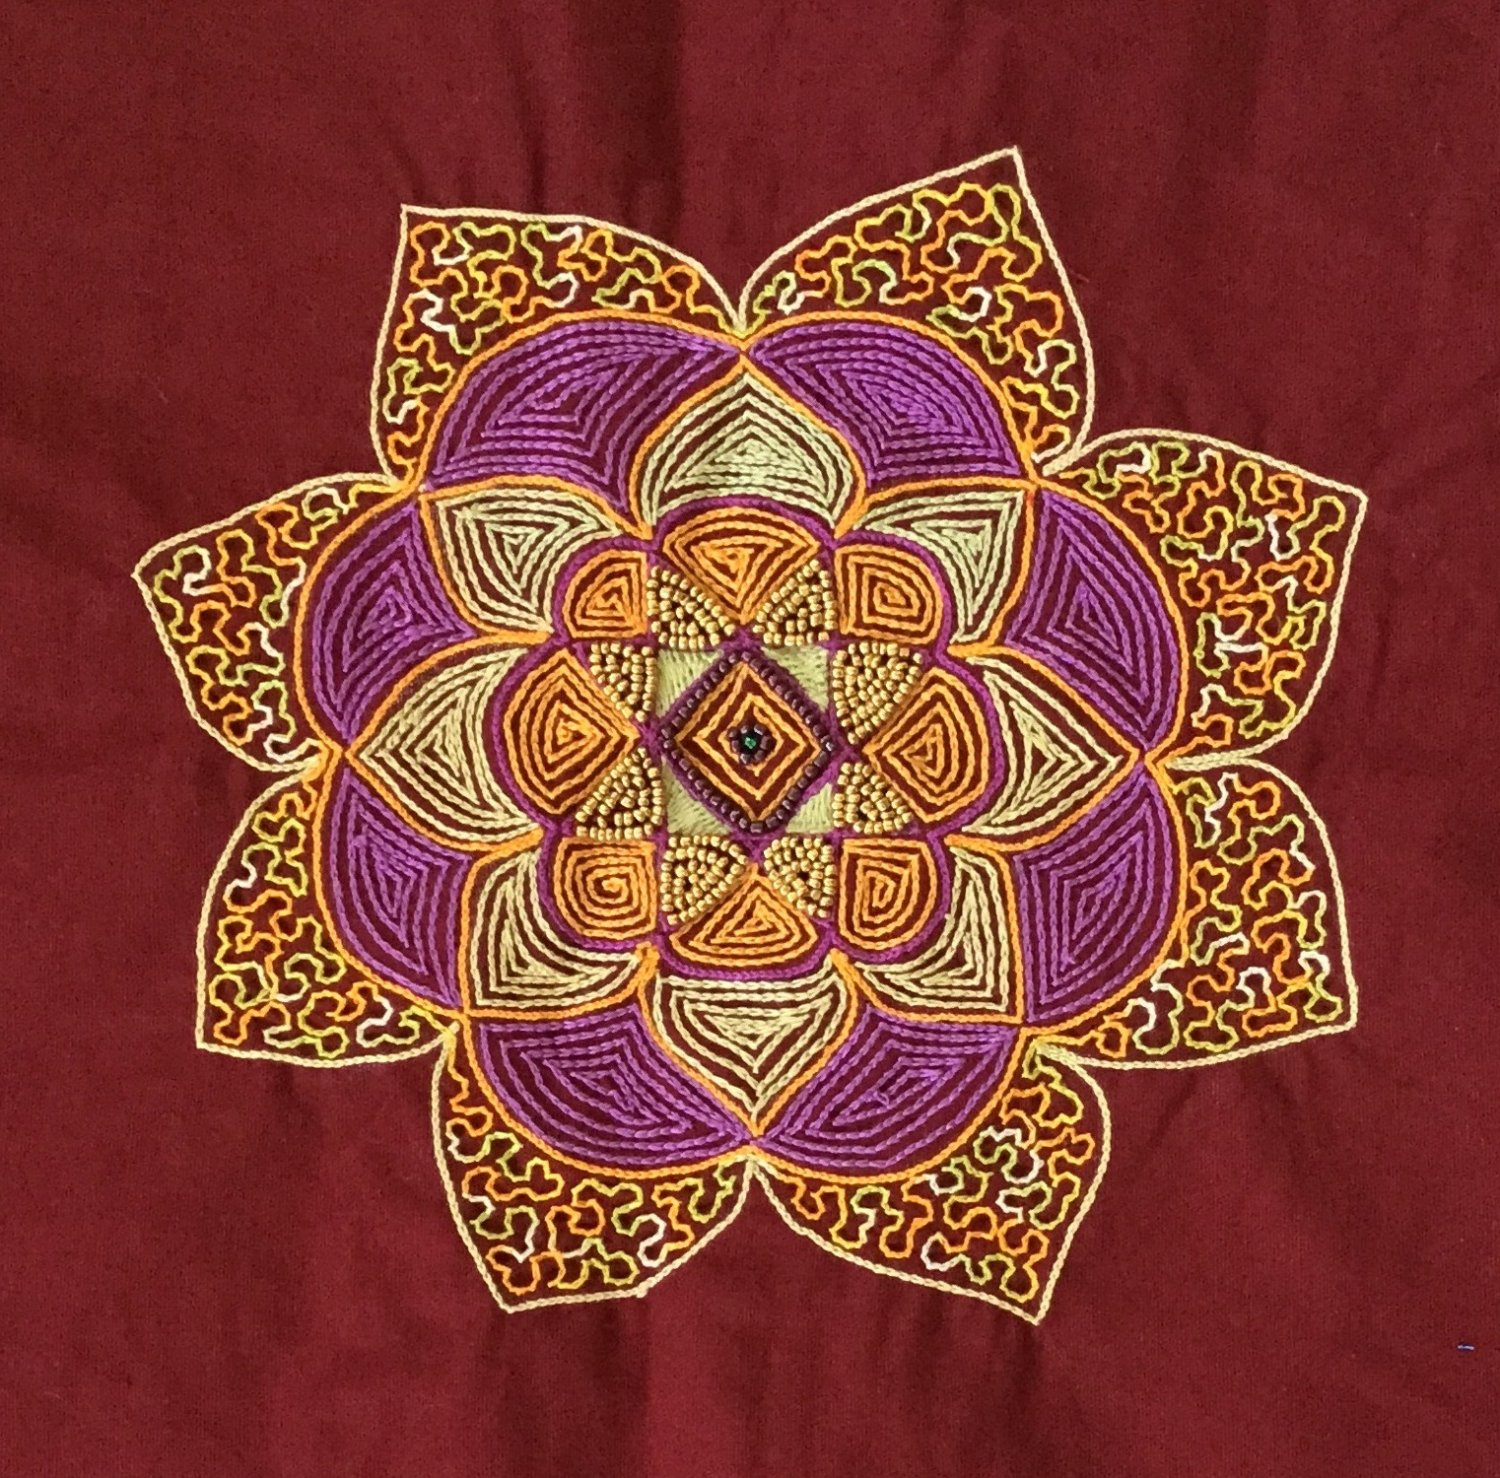 Kolam Pattern Embroidery Artwork Handmade Indian Irula Tribe Decor Handicraft